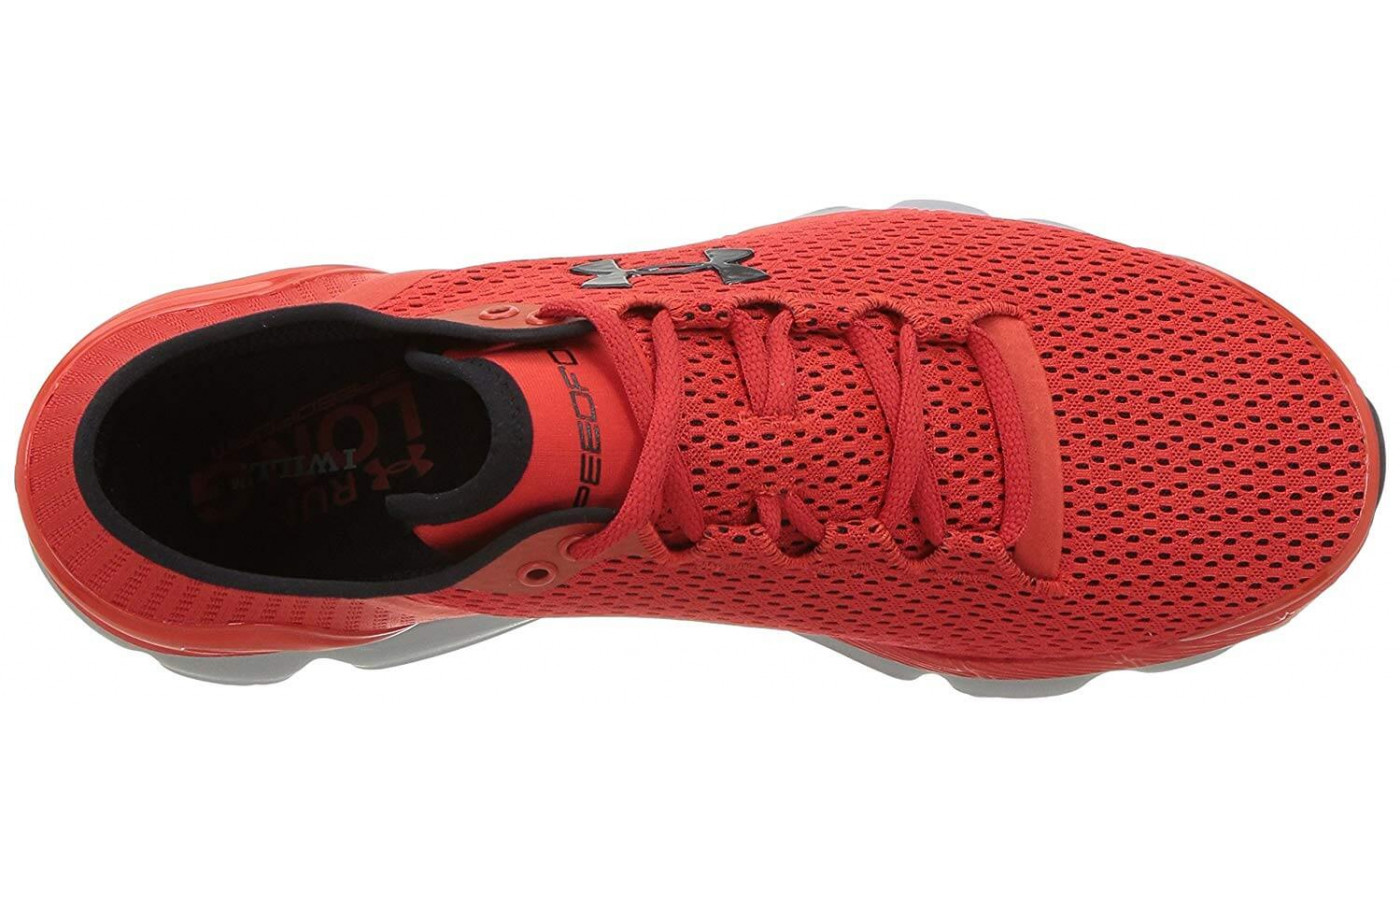 Under Armour SpeedForm Intake 2 top